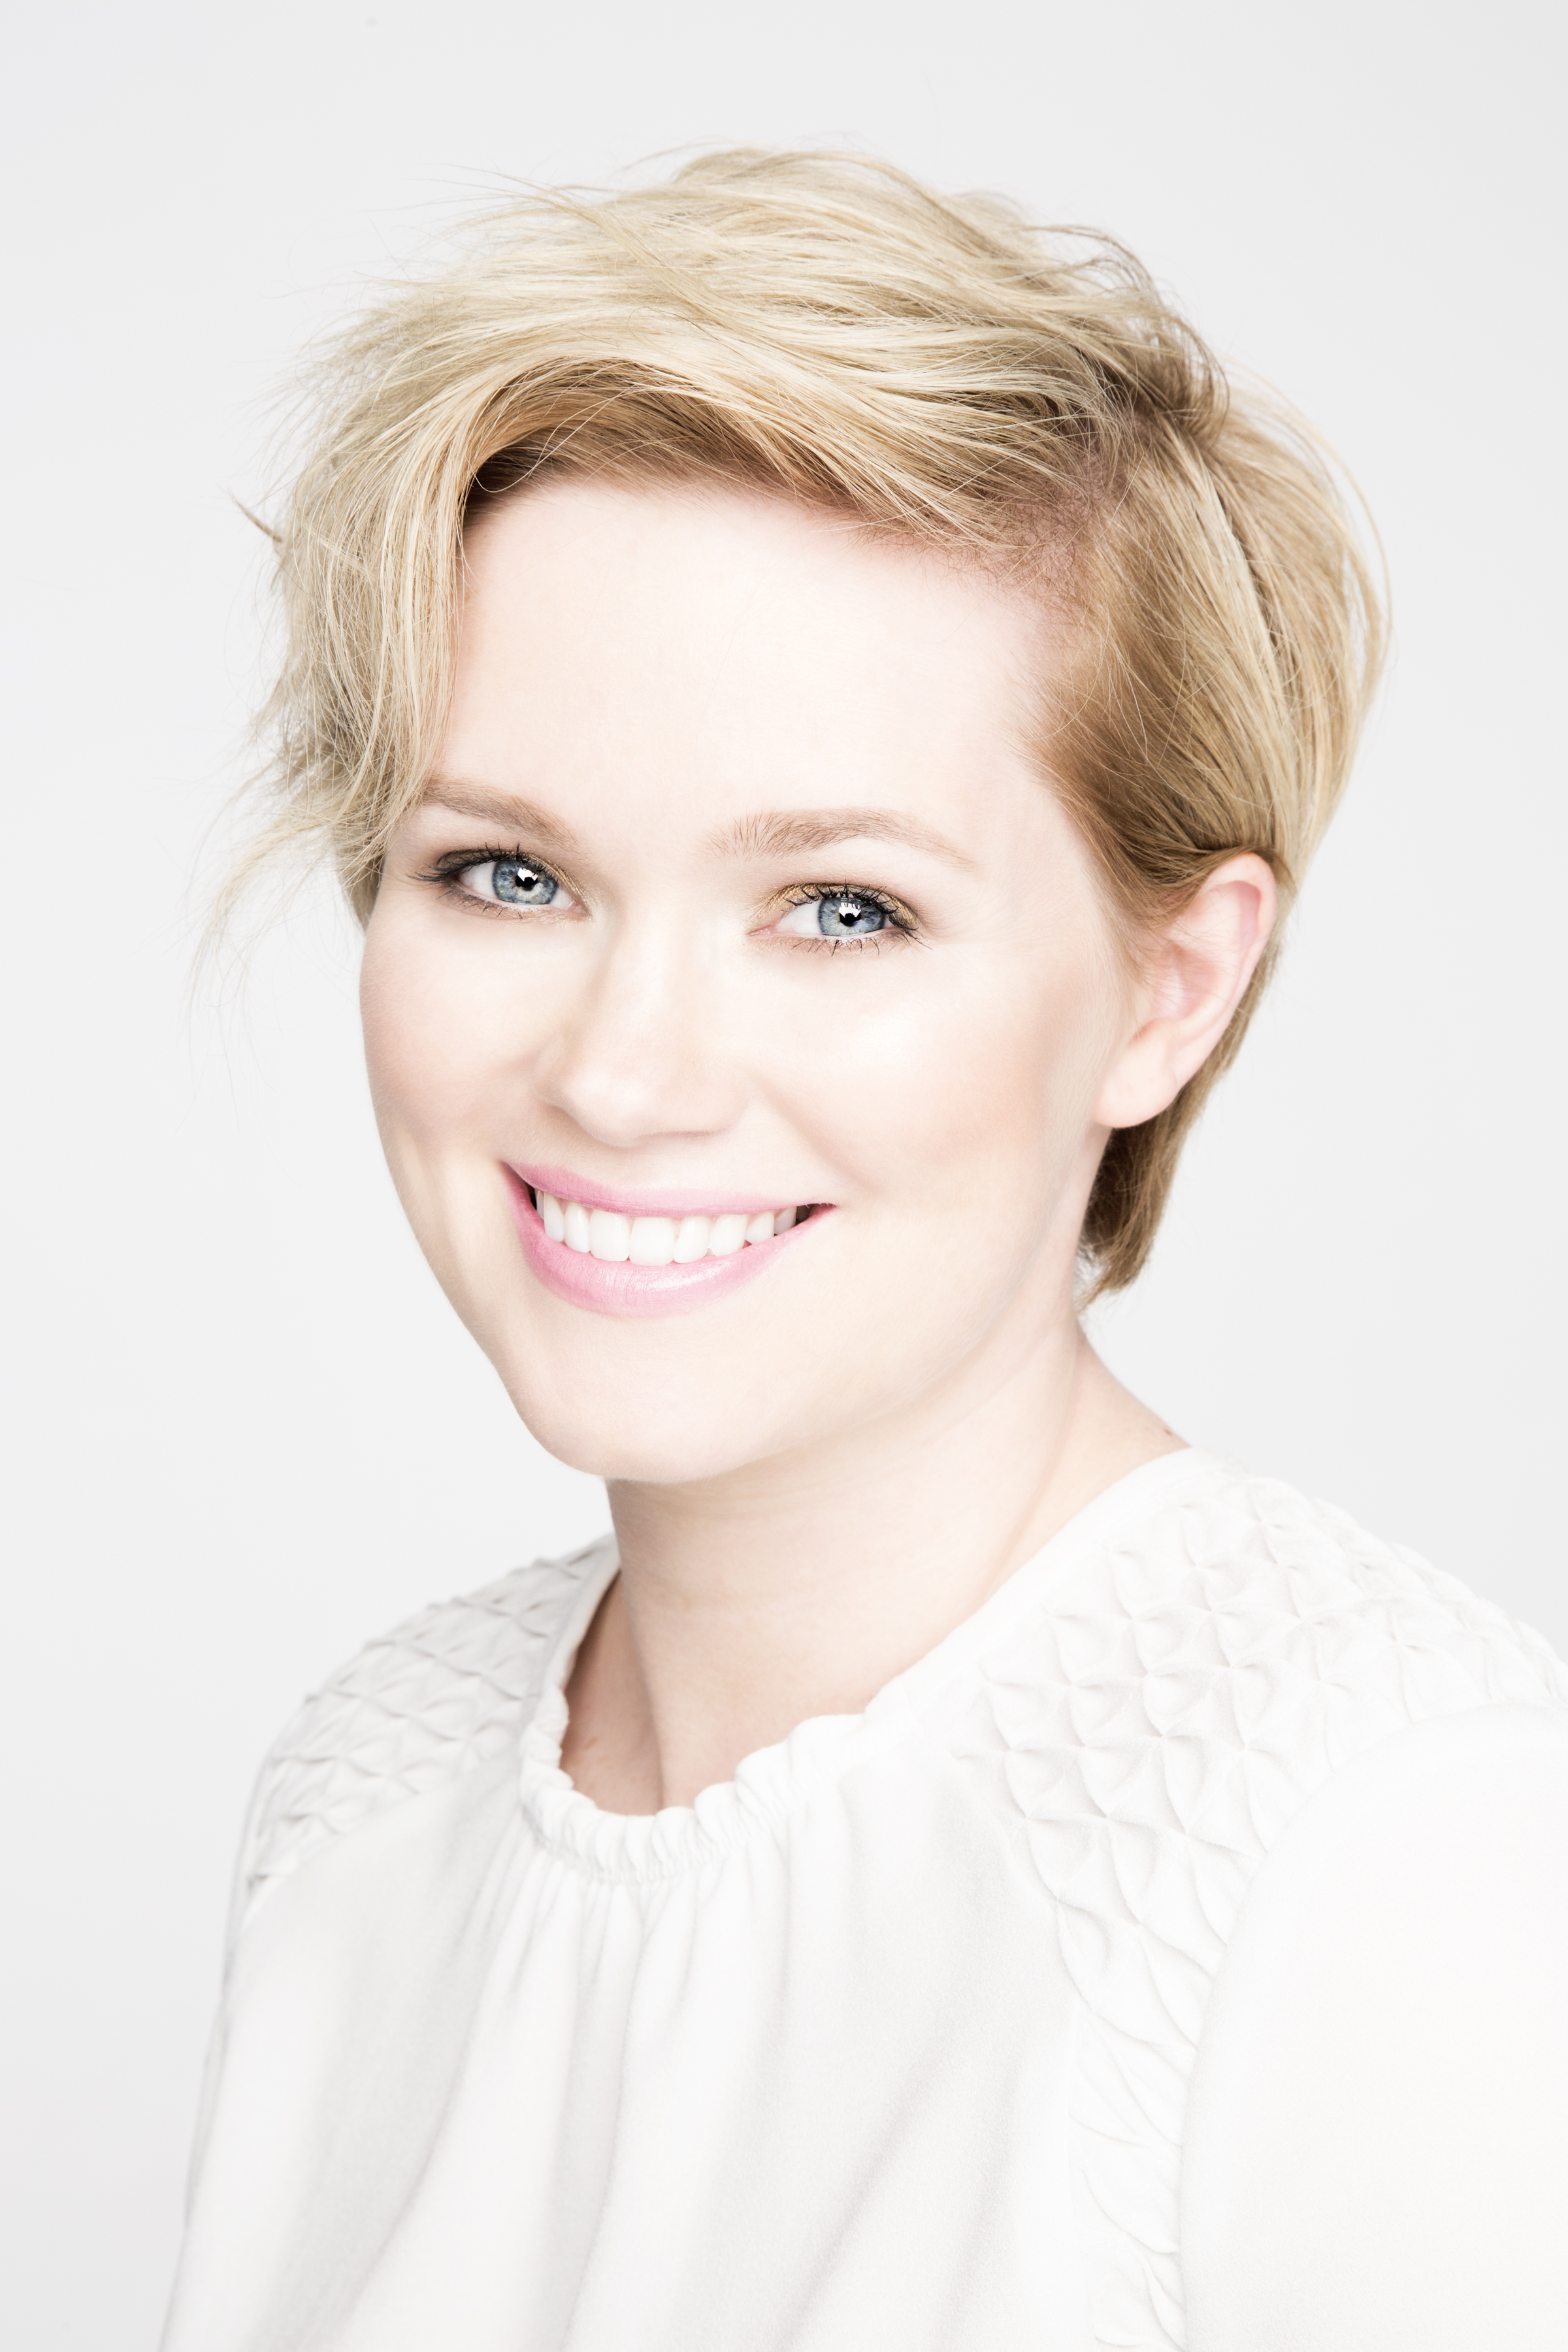 cecelia ahern flawedcecelia ahern books, cecelia ahern flawed, cecelia ahern perfect, cecelia ahern love rosie, cecelia ahern ps i love you, cecelia ahern thanks for the memories, cecelia ahern quotes, cecelia ahern kitapları, cecelia ahern where rainbows end pdf, cecelia ahern lyrebird, cecelia ahern flawed read online, cecelia ahern read online, cecelia ahern epub, cecelia ahern suflete pereche pdf, cecelia ahern wikipedia, cecelia ahern flawed pdf, cecelia ahern books download, cecelia ahern books pdf, cecelia ahern bücher, cecelia ahern girl in the mirror